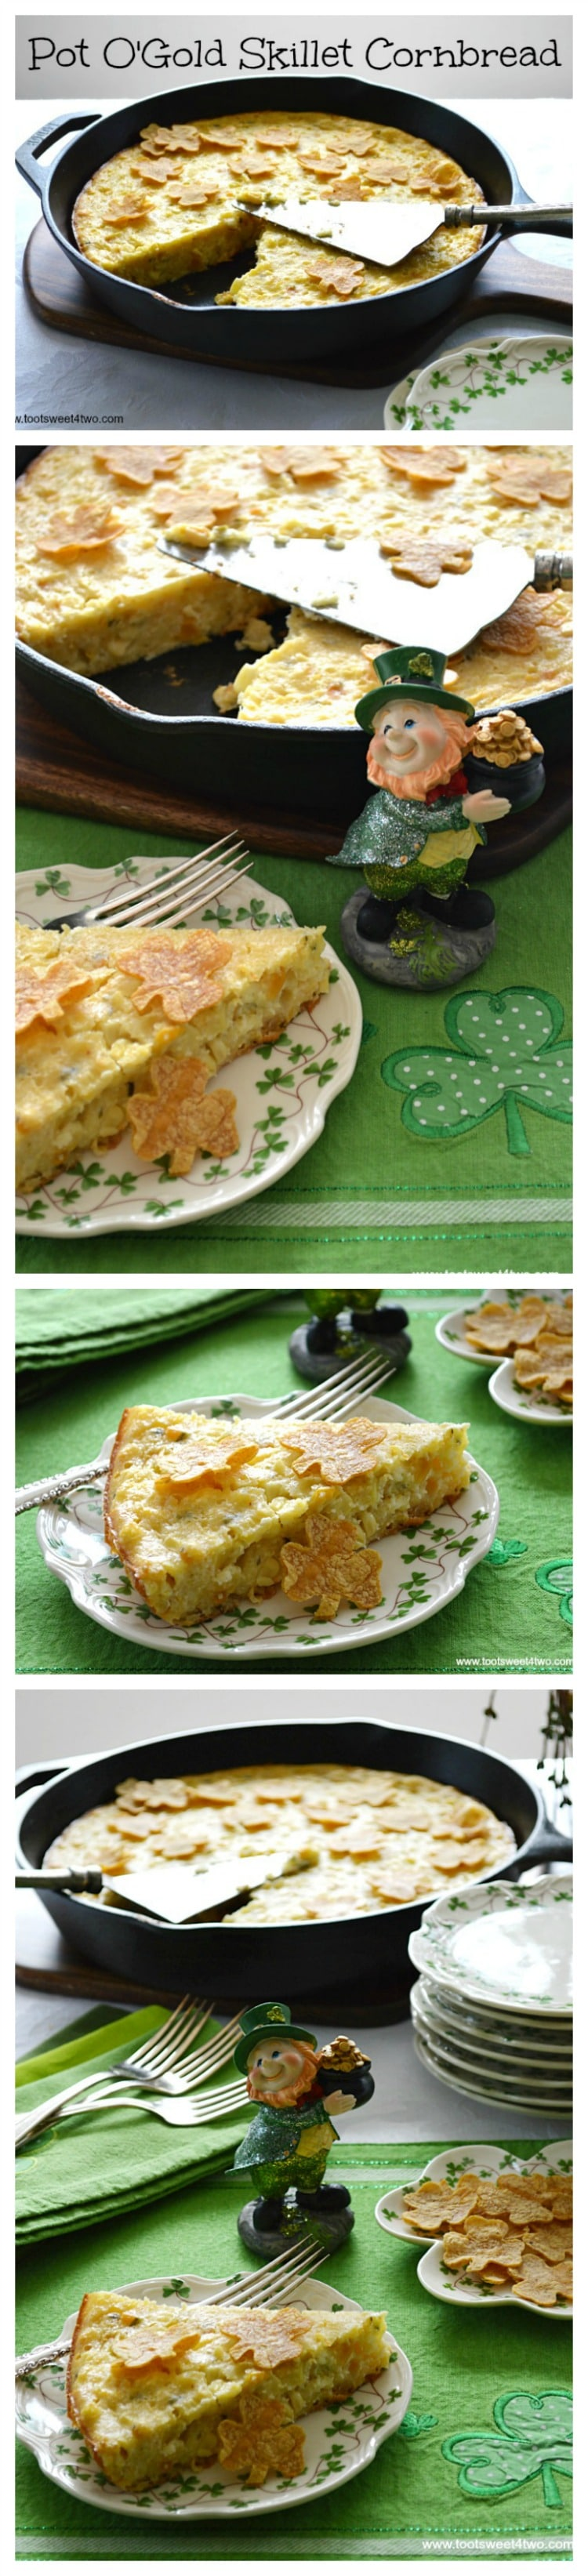 Pot O'Gold Skillet Cornbread collage